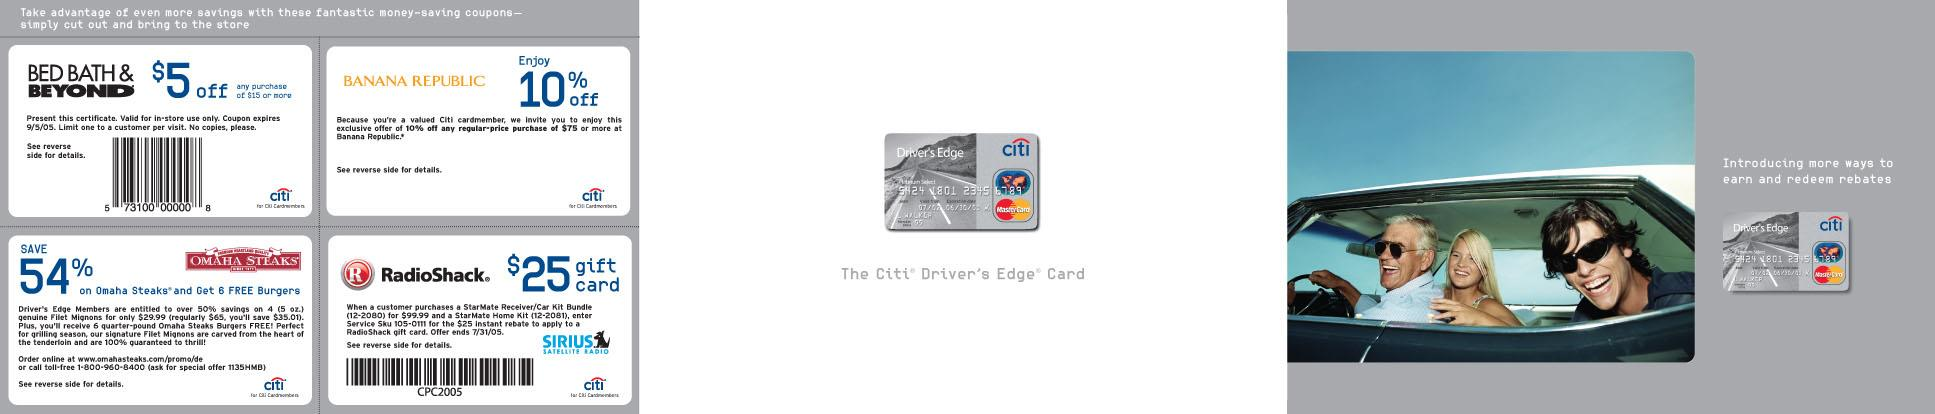 Citi Coupons